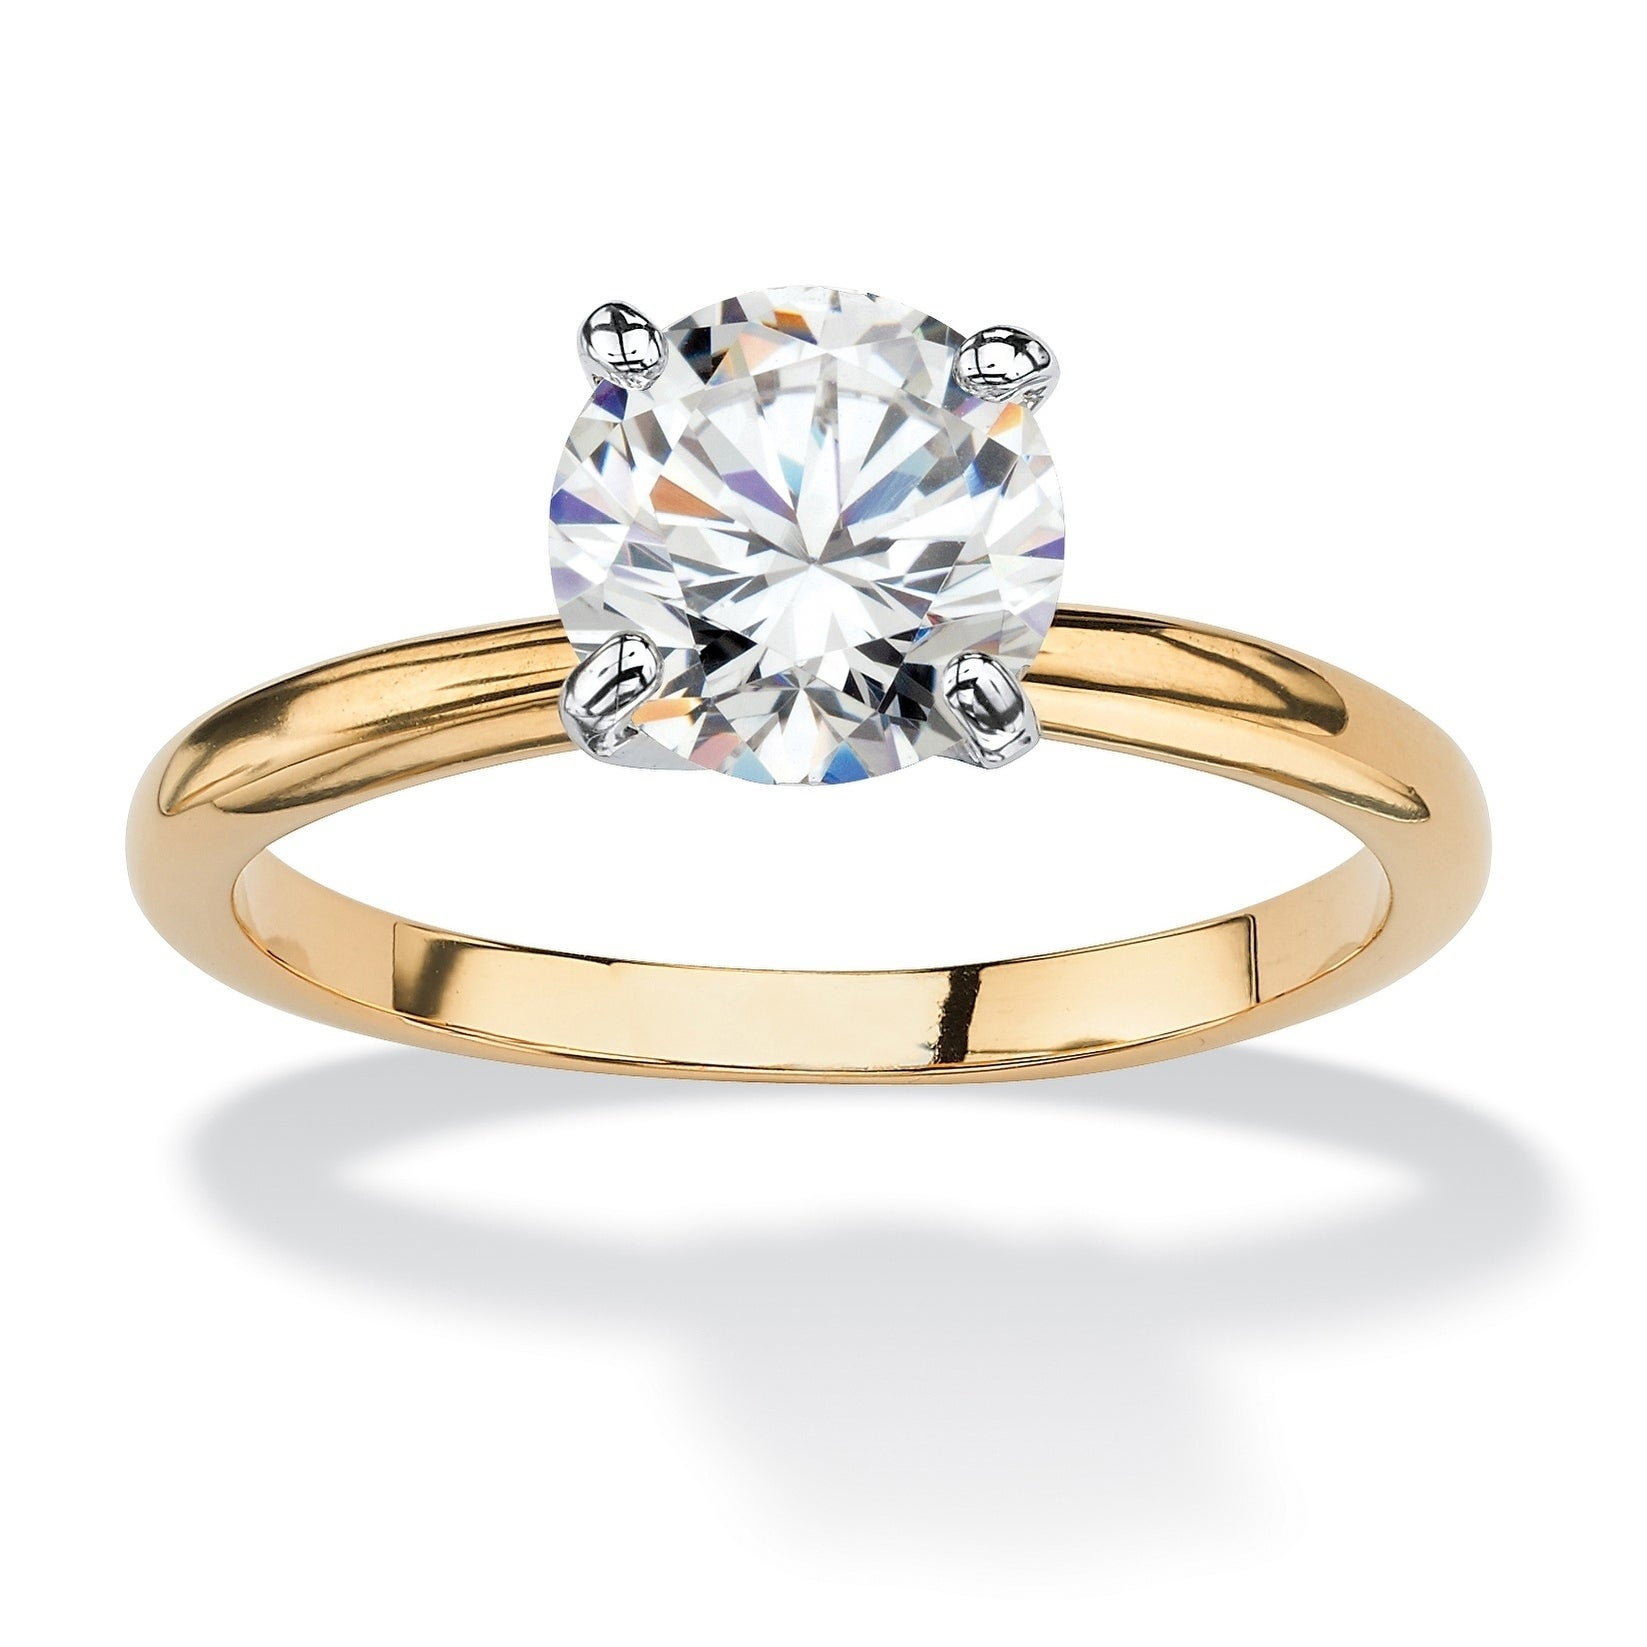 Shop Yellow Gold-plated Cubic Zirconia Solitaire Engagement Ring ... 52fef4b2e